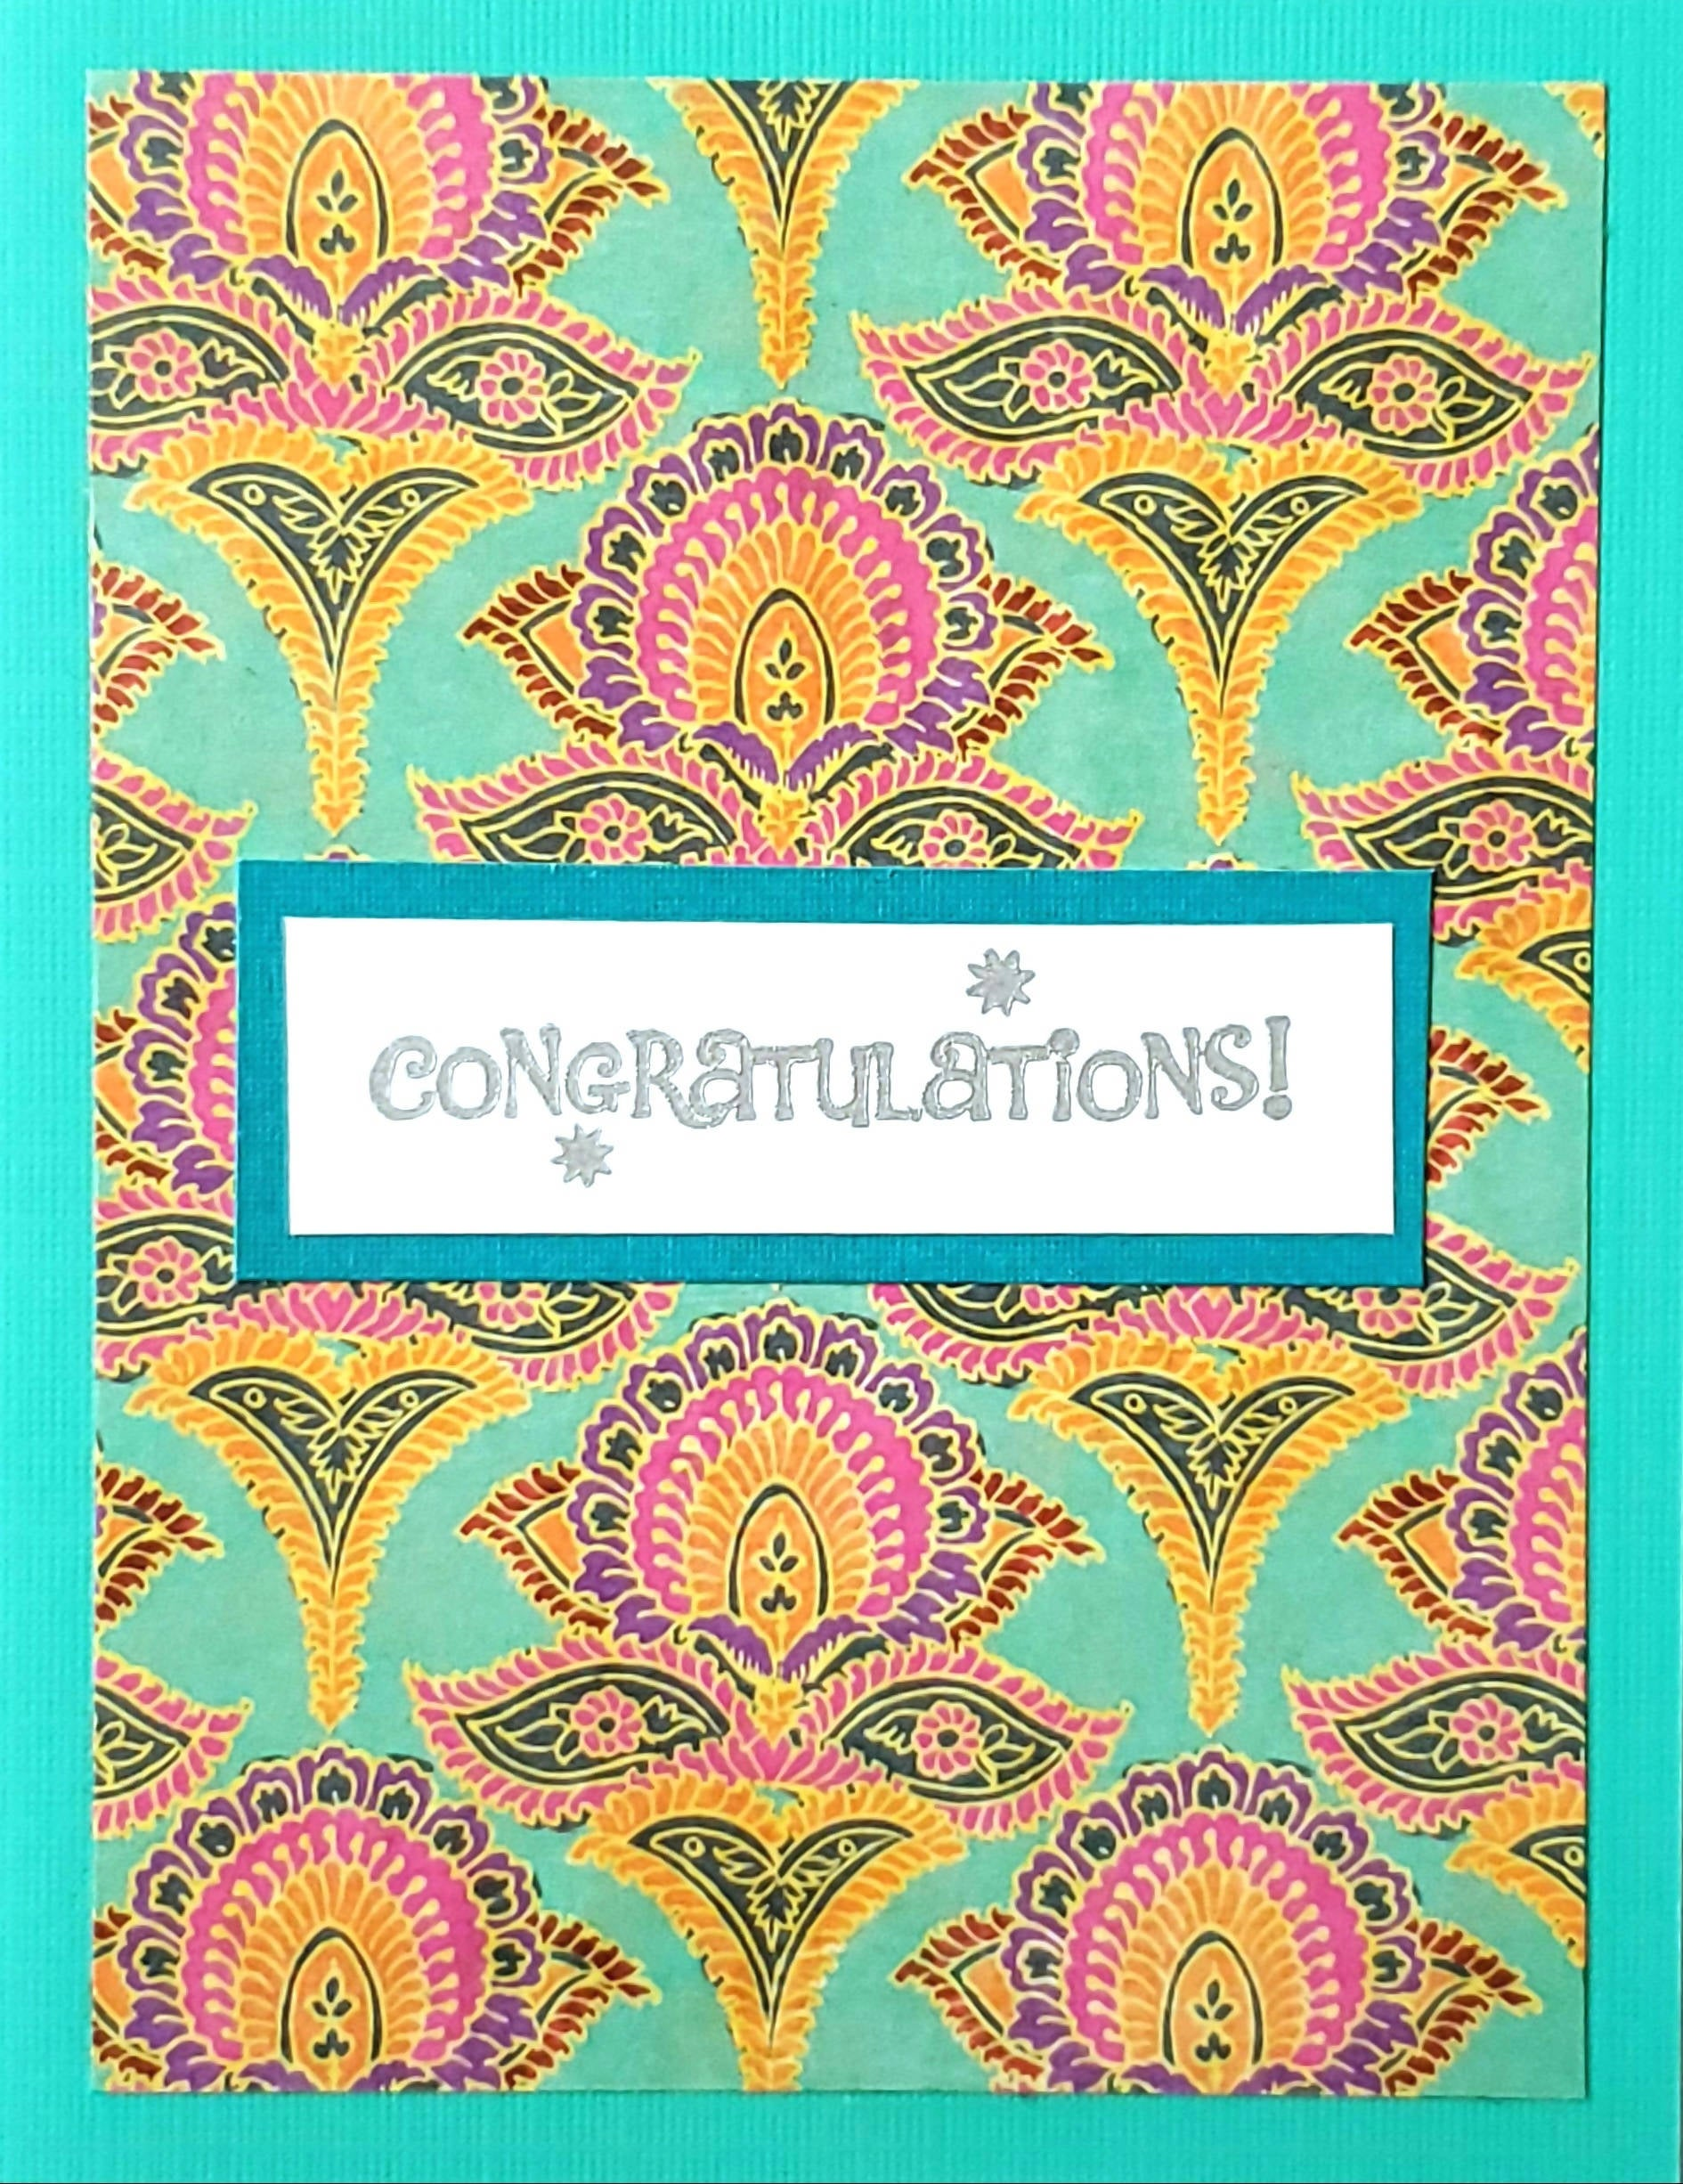 Congratulations Card (Party Turquoise)